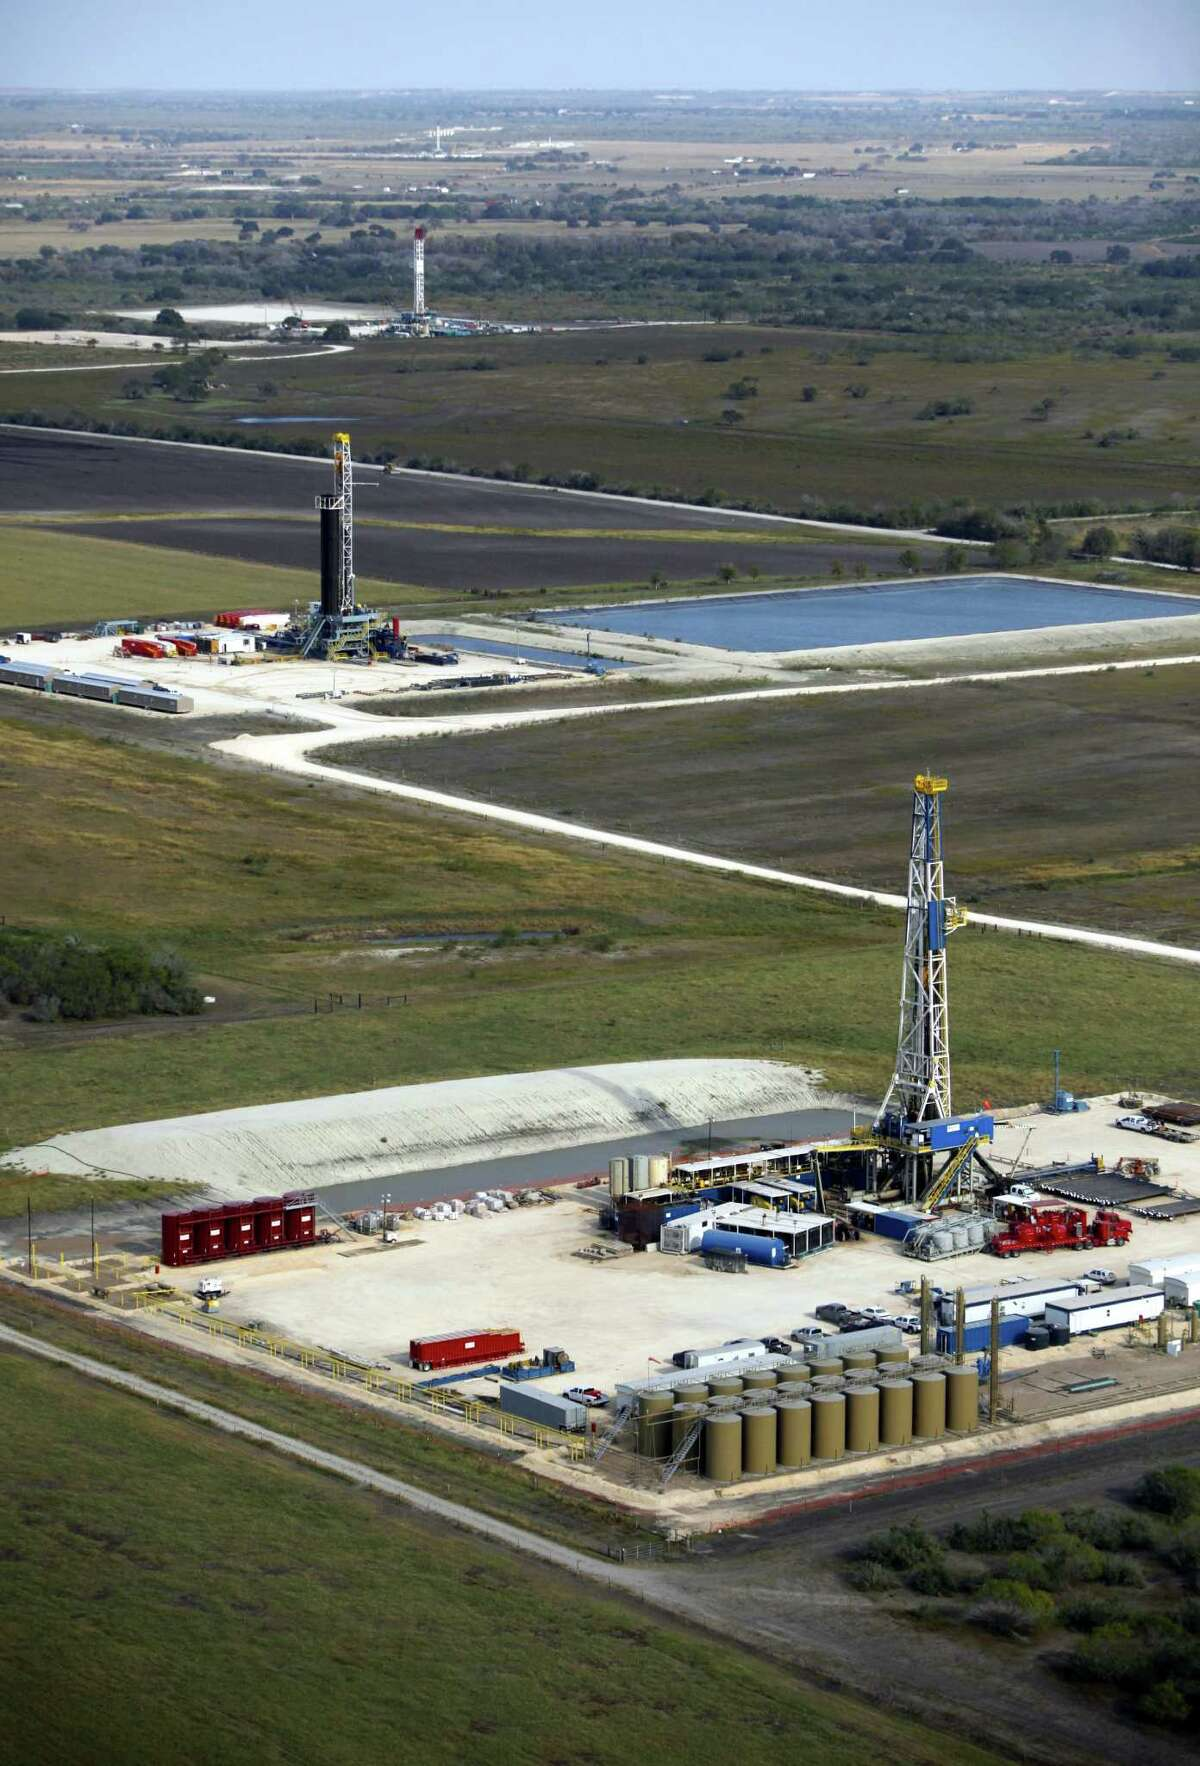 Drilling in the Eagle Ford Shale oil play has helped boost U.S. oil production to levels not seen in 20 years.